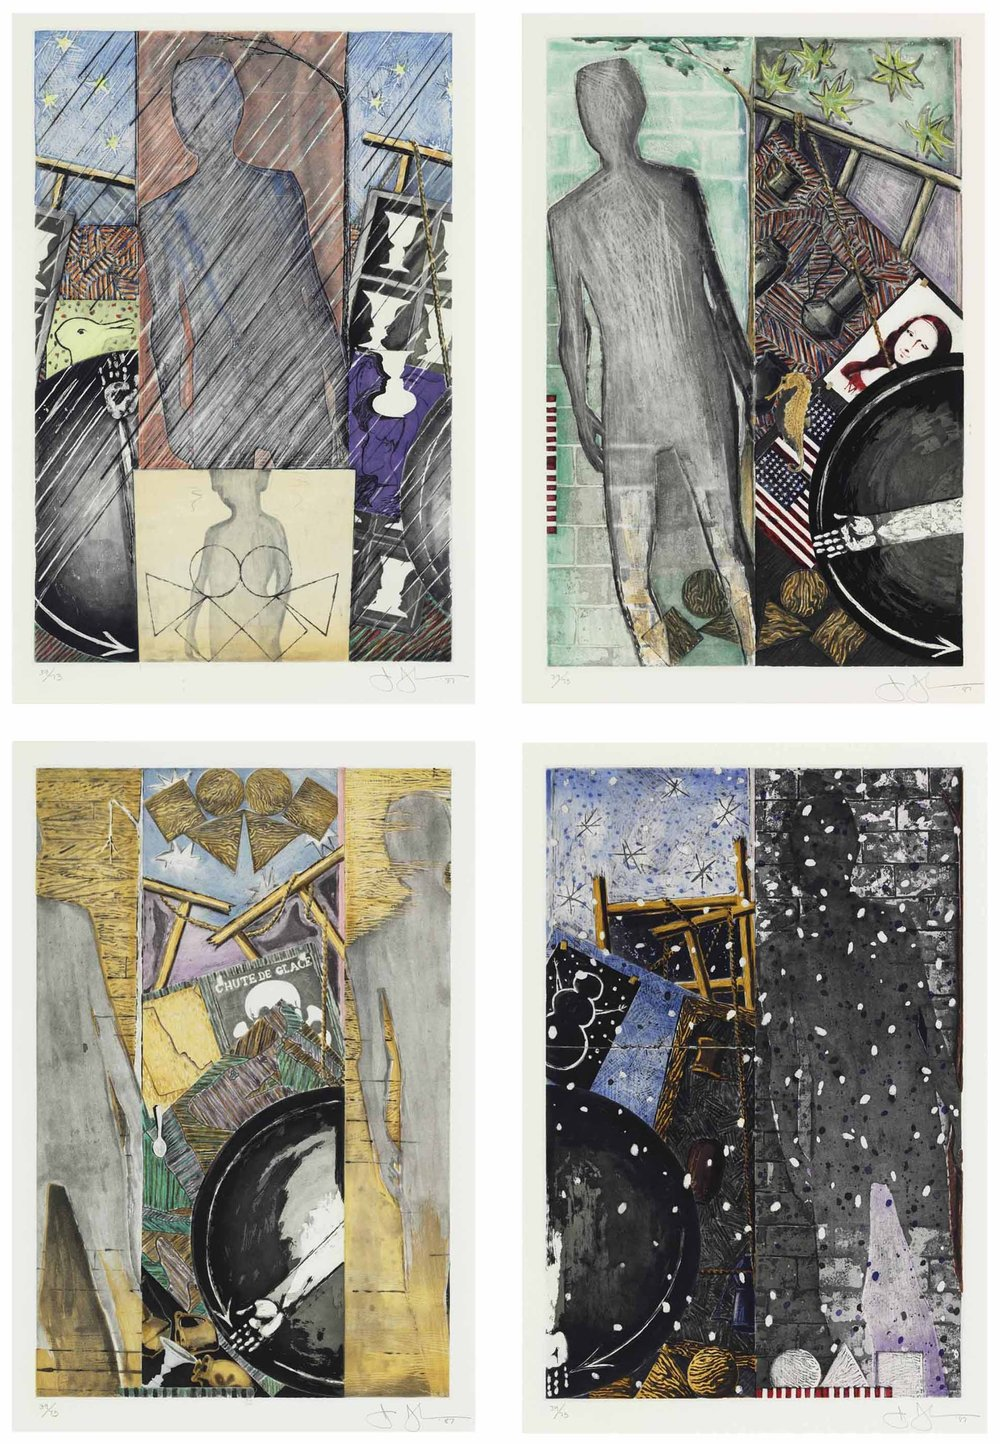 "Jasper Johns,  The Seasons: Spring, Summer, Fall, Winter  (1987). From the  Metropolitan Museum of Art : ""These four prints of The Seasons explore artifacts and seasonal symbols to represent the epochs of life and the cycles of growth and aging. The works review many motifs used previously in Johns's work - e.g. the arm in a partial circle rotates like a clock through these panels. Optical illusions such as duck/rabbit or old woman/young woman in ""Spring"" explore the nature of seeing and experience. In ""Fall,"" a profile of Marcel Duchamp (a spiritual and artistic mentor to Johns) is included next to a skull and crossbones from a Swiss sign warning of avalanche danger, a reminder of mortality. The Seasons also incorporates elements of more reflective imagery that emerged in his work in the 1980s. A scaled down version of the artist's own shadow refers to Johns's meditation on his own path."""